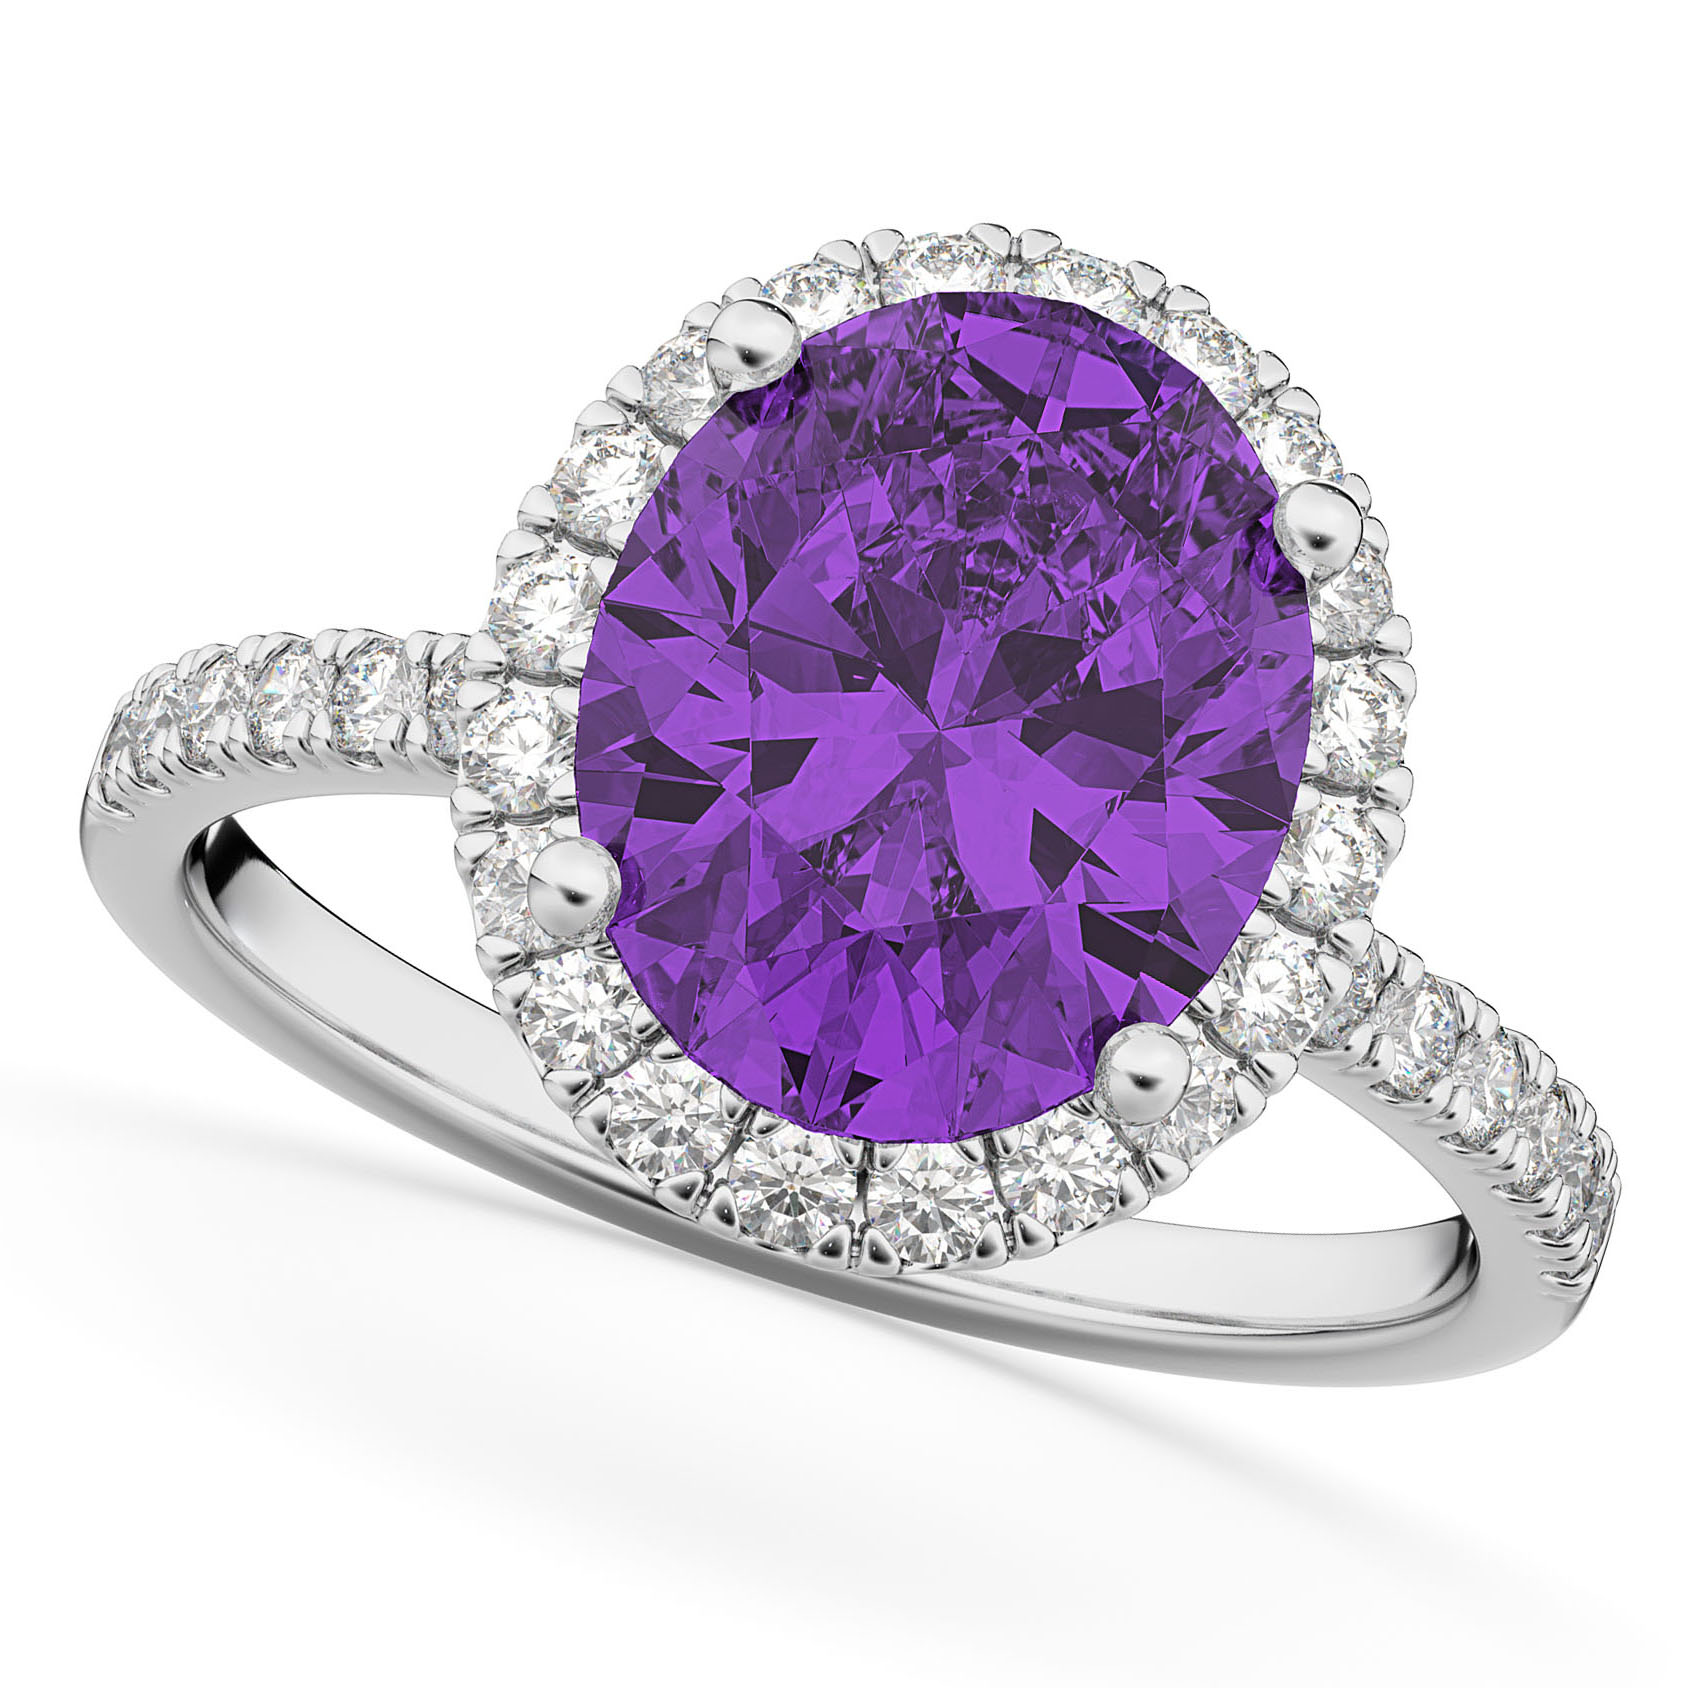 Oval Cut Halo Amethyst & Diamond Engagement Ring 14K White Gold 2.91ct